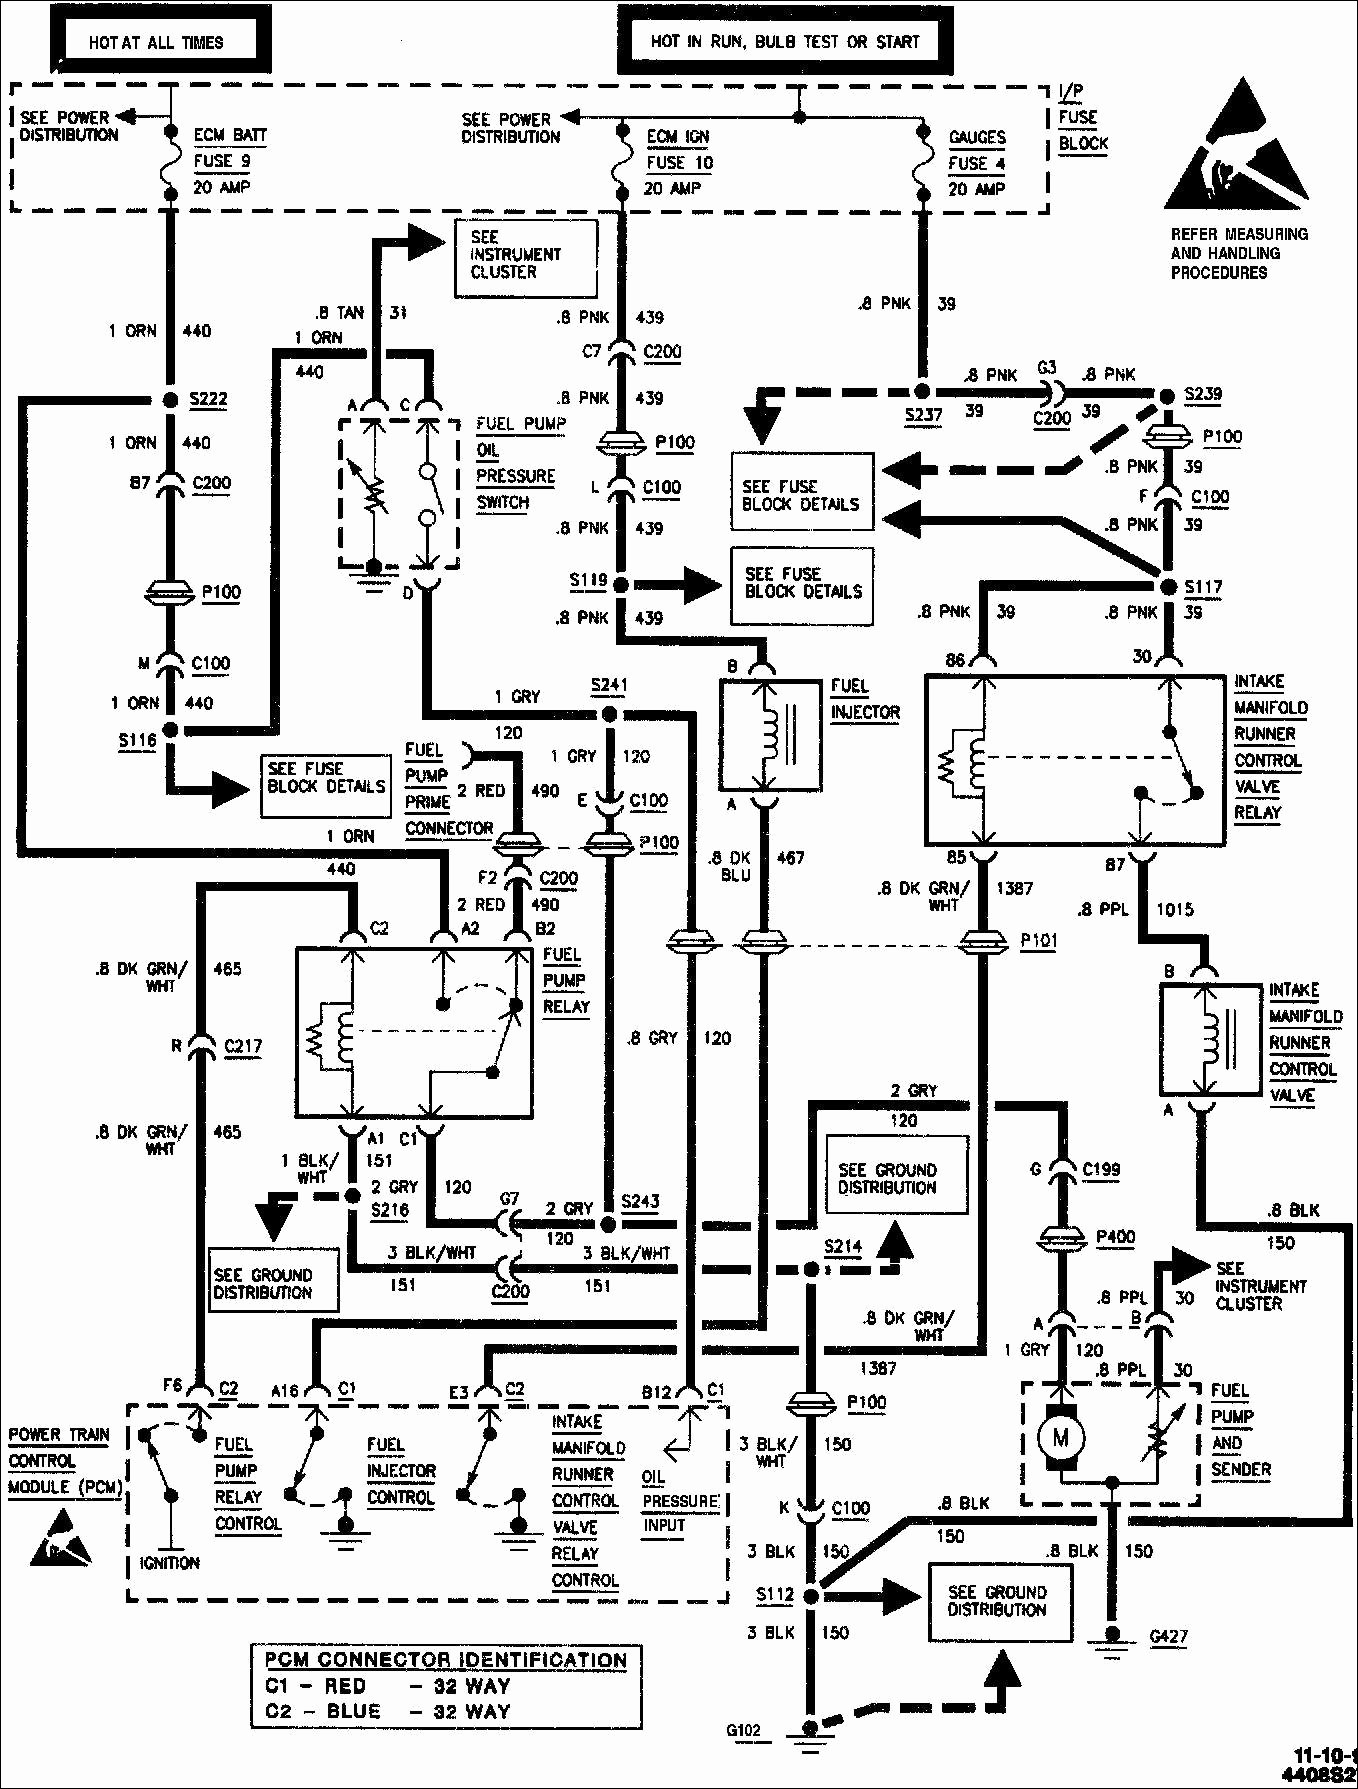 2000 Ford Ranger Horn Wiring - 12.23.kenmo-lp.de •  Ford Tractor Wiring Diagram on ford 2600 tractor alternator, l3400 kubota hydraulics diagram, ford 2310 tractor wiring, oliver 1650 wiring diagram, 4500 ford backhoe wiring diagram, ford tractor 3 cylinder, ford 2000 tractor specifications, ford 3000 tractor, ford 4500 backhoe fuel diagram, ford 3400 tractor manual pdf, 801 ford tractor steering diagram, ford 5000 transmission diagram, ford 9n wiring-diagram, ford tractor hydraulic pump diagrams, 8n tractor firing order diagram, ford naa wiring-diagram, 601 ford tractor parts diagram, 8n ford tractor steering parts diagram, ford 500 wiring diagram, ford 601 tractor data,